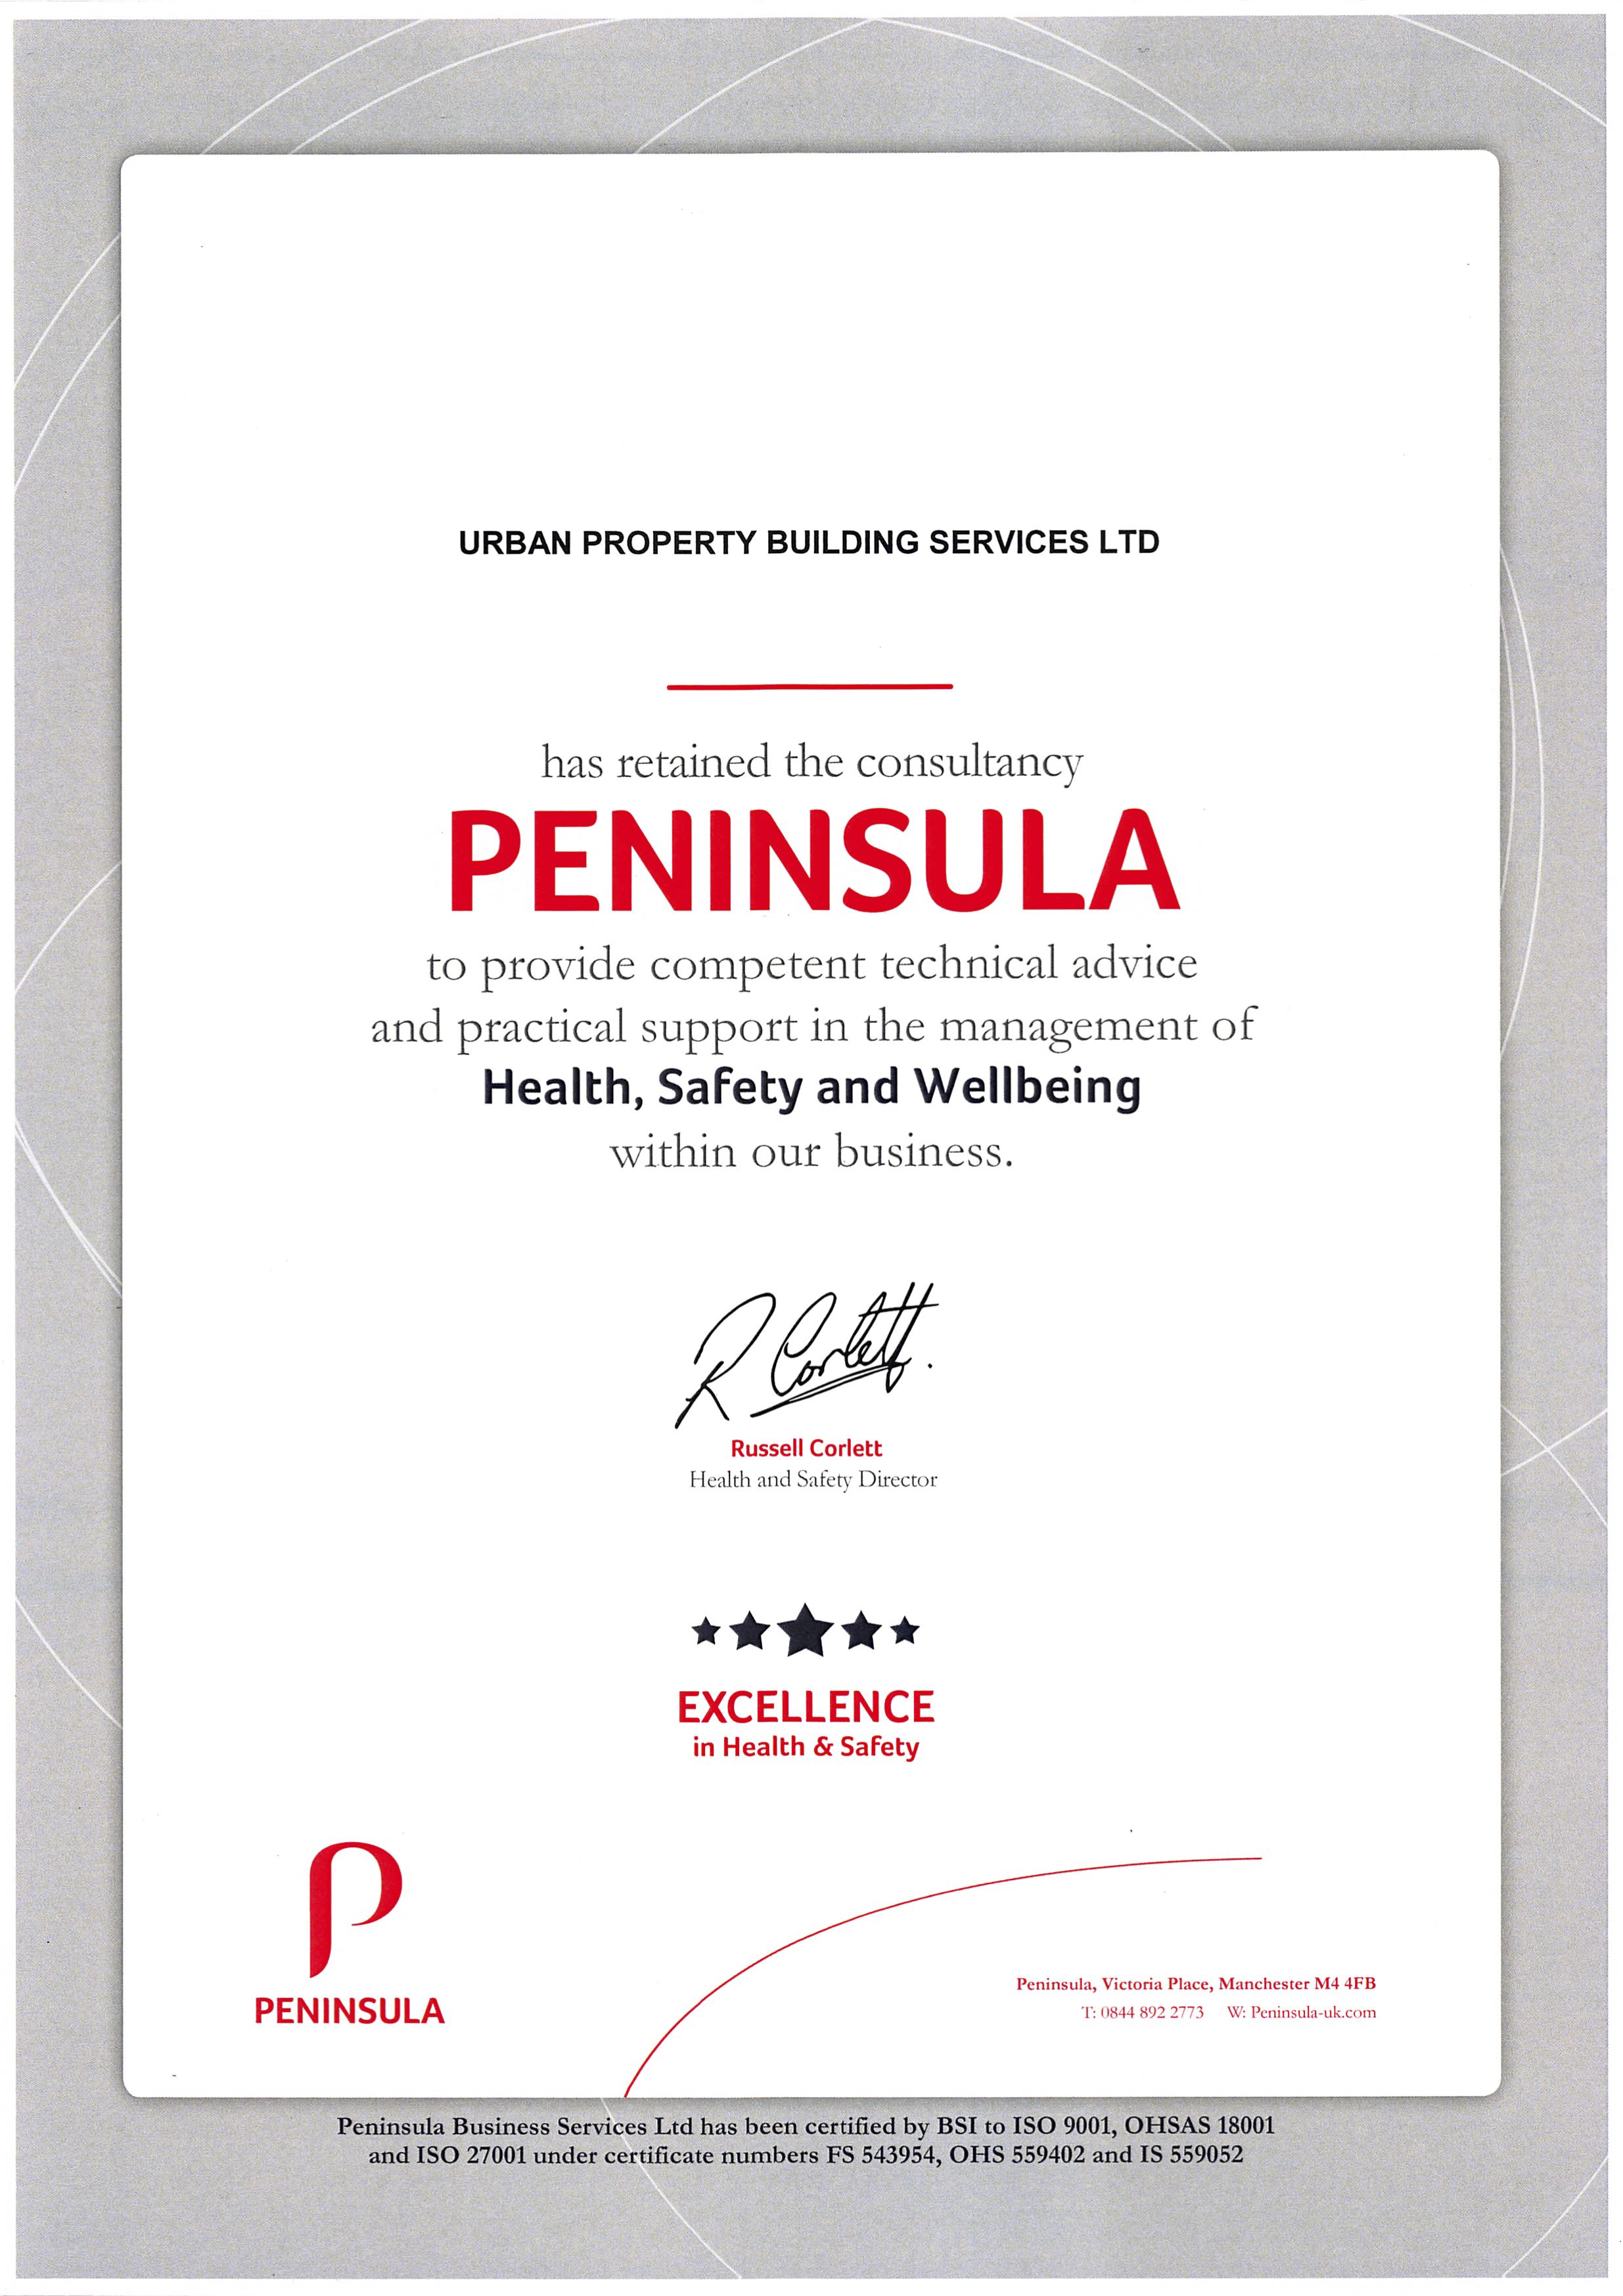 Peninsula - Health, Safety and Wellbeing